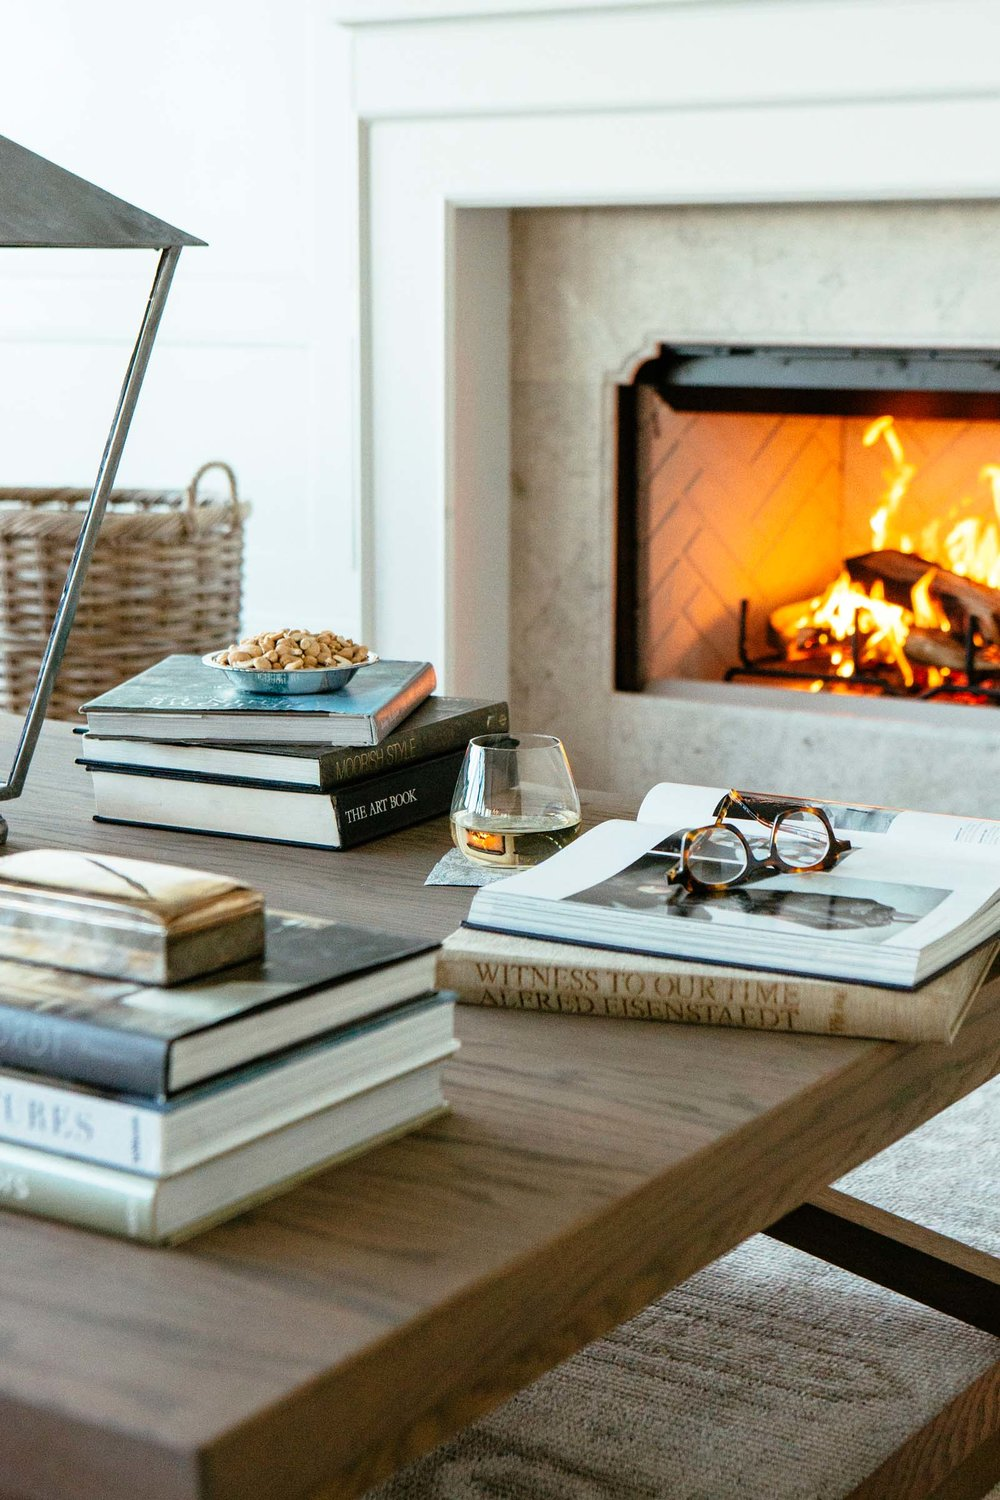 Leo_Designs_Chicago_interior_design_grand_haven_beach_refuge10.jpg